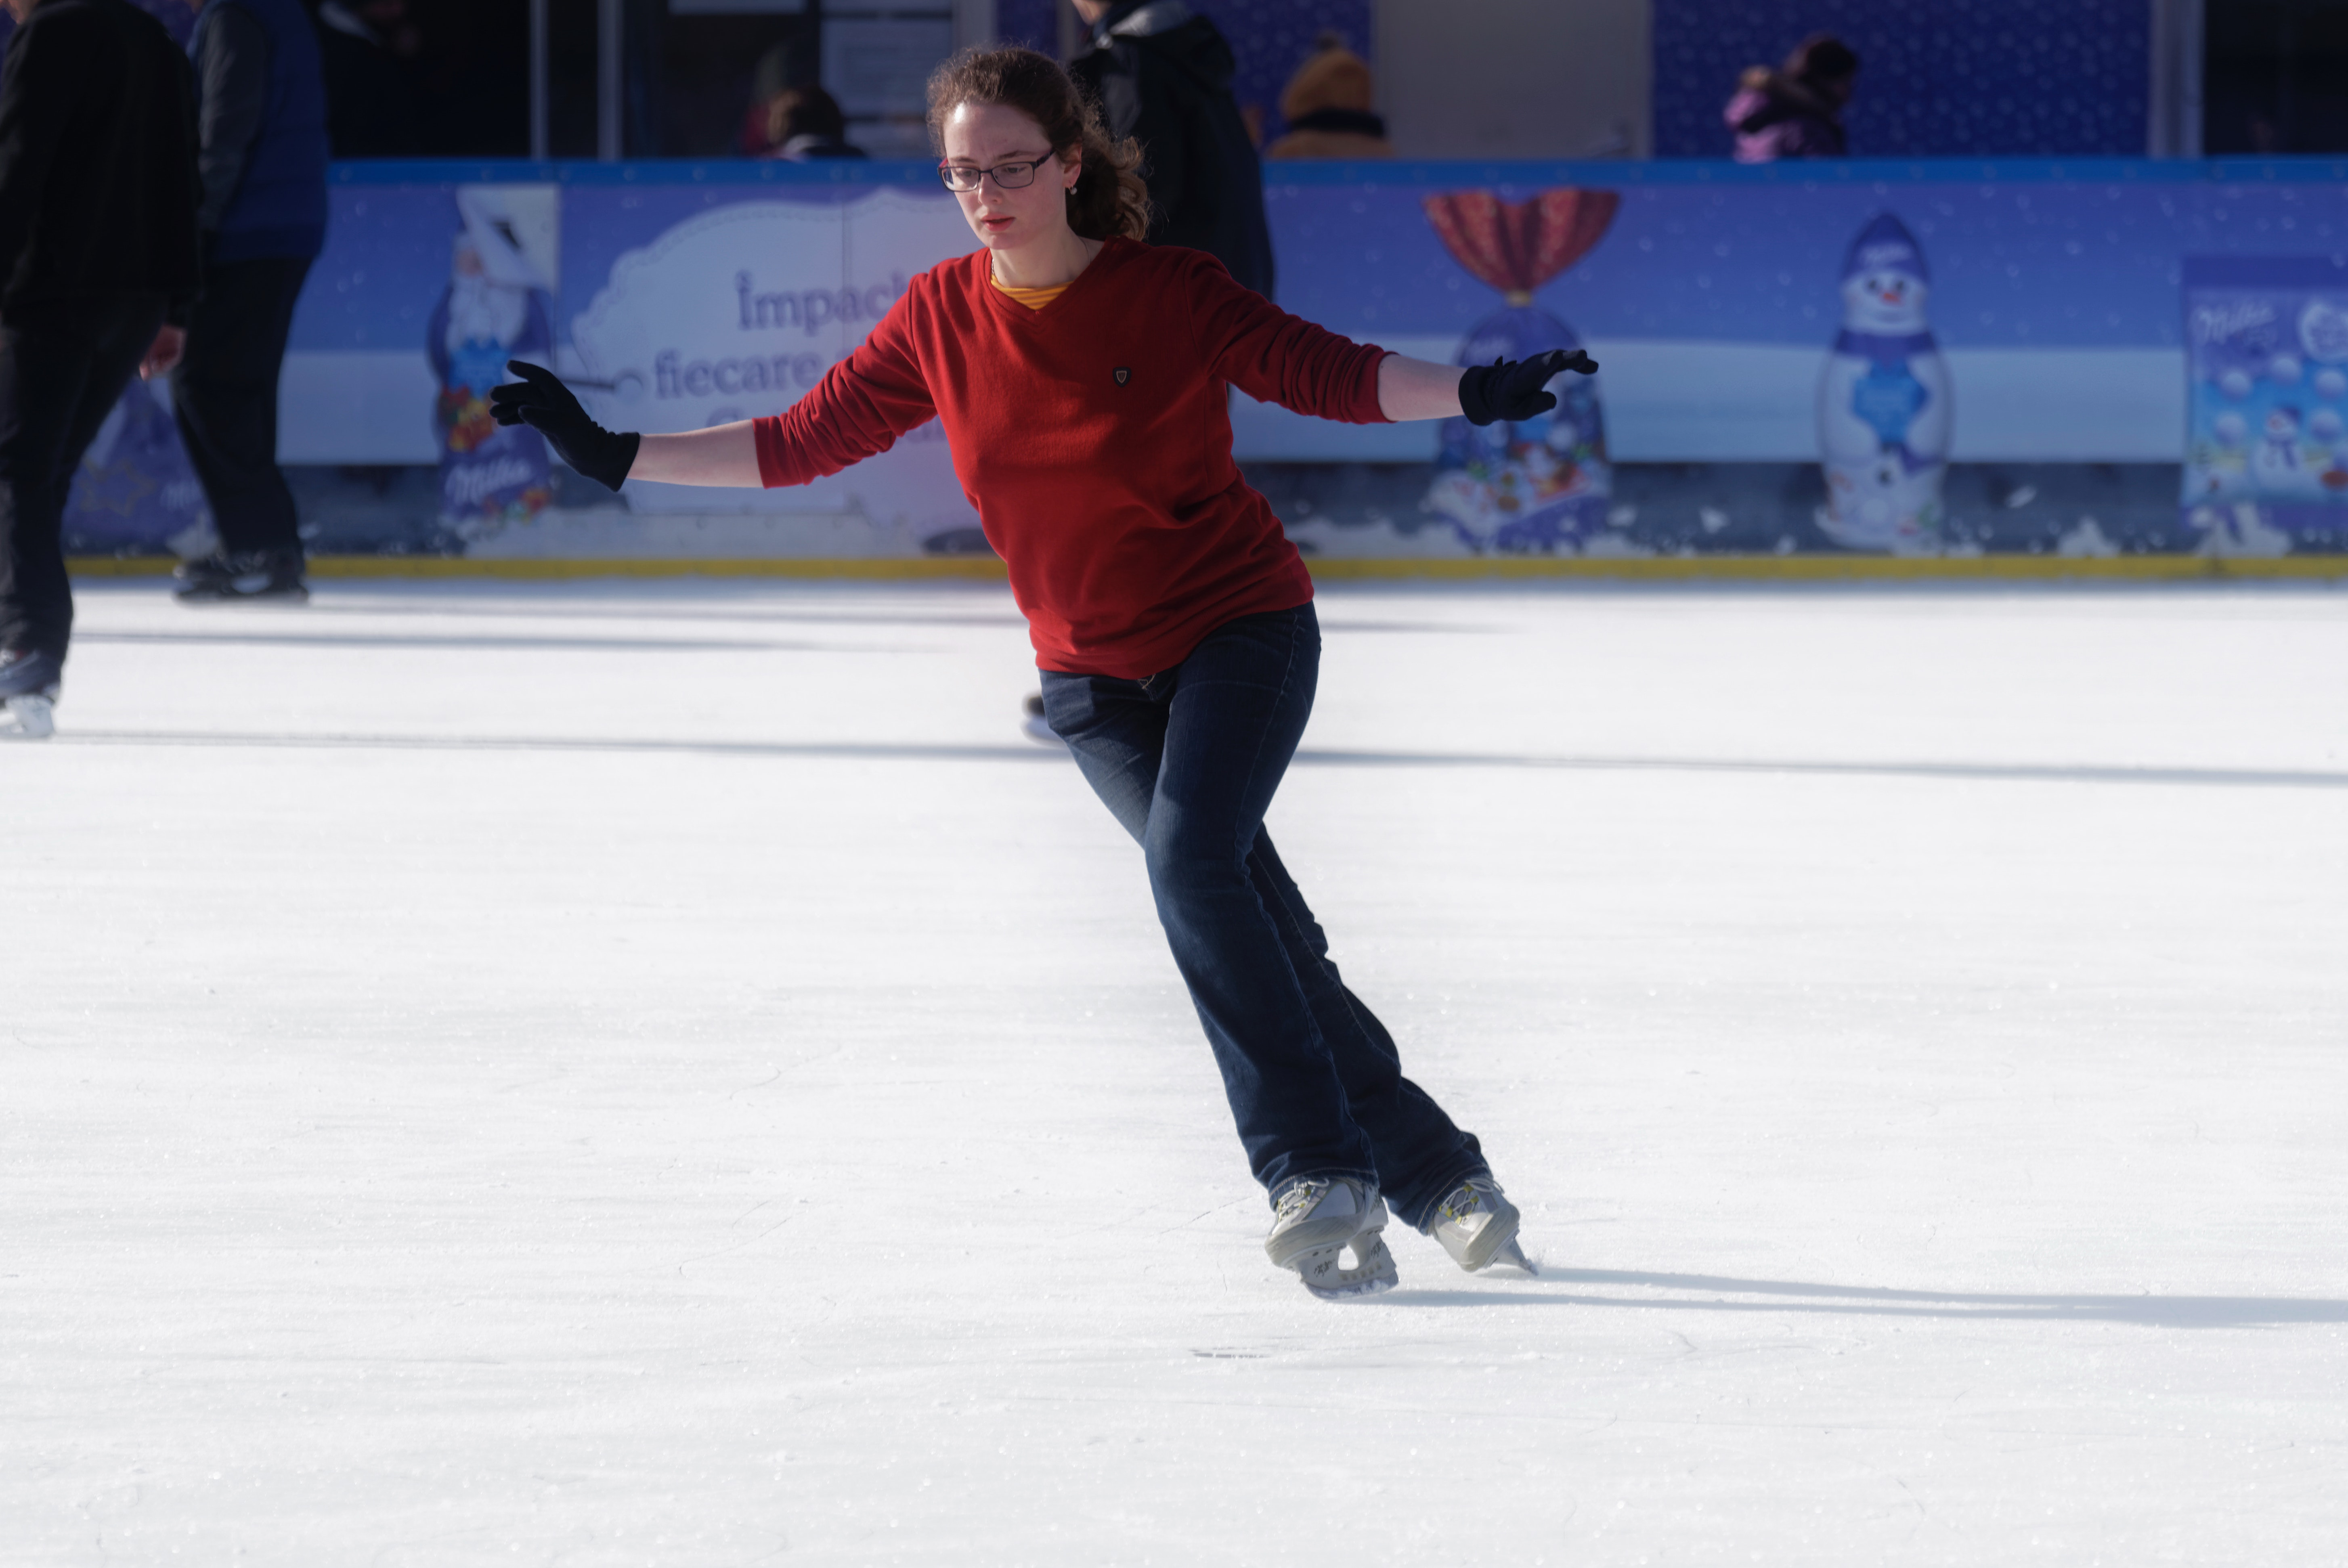 Free stock photo of performing, winter, young woman skating on ice skating rink